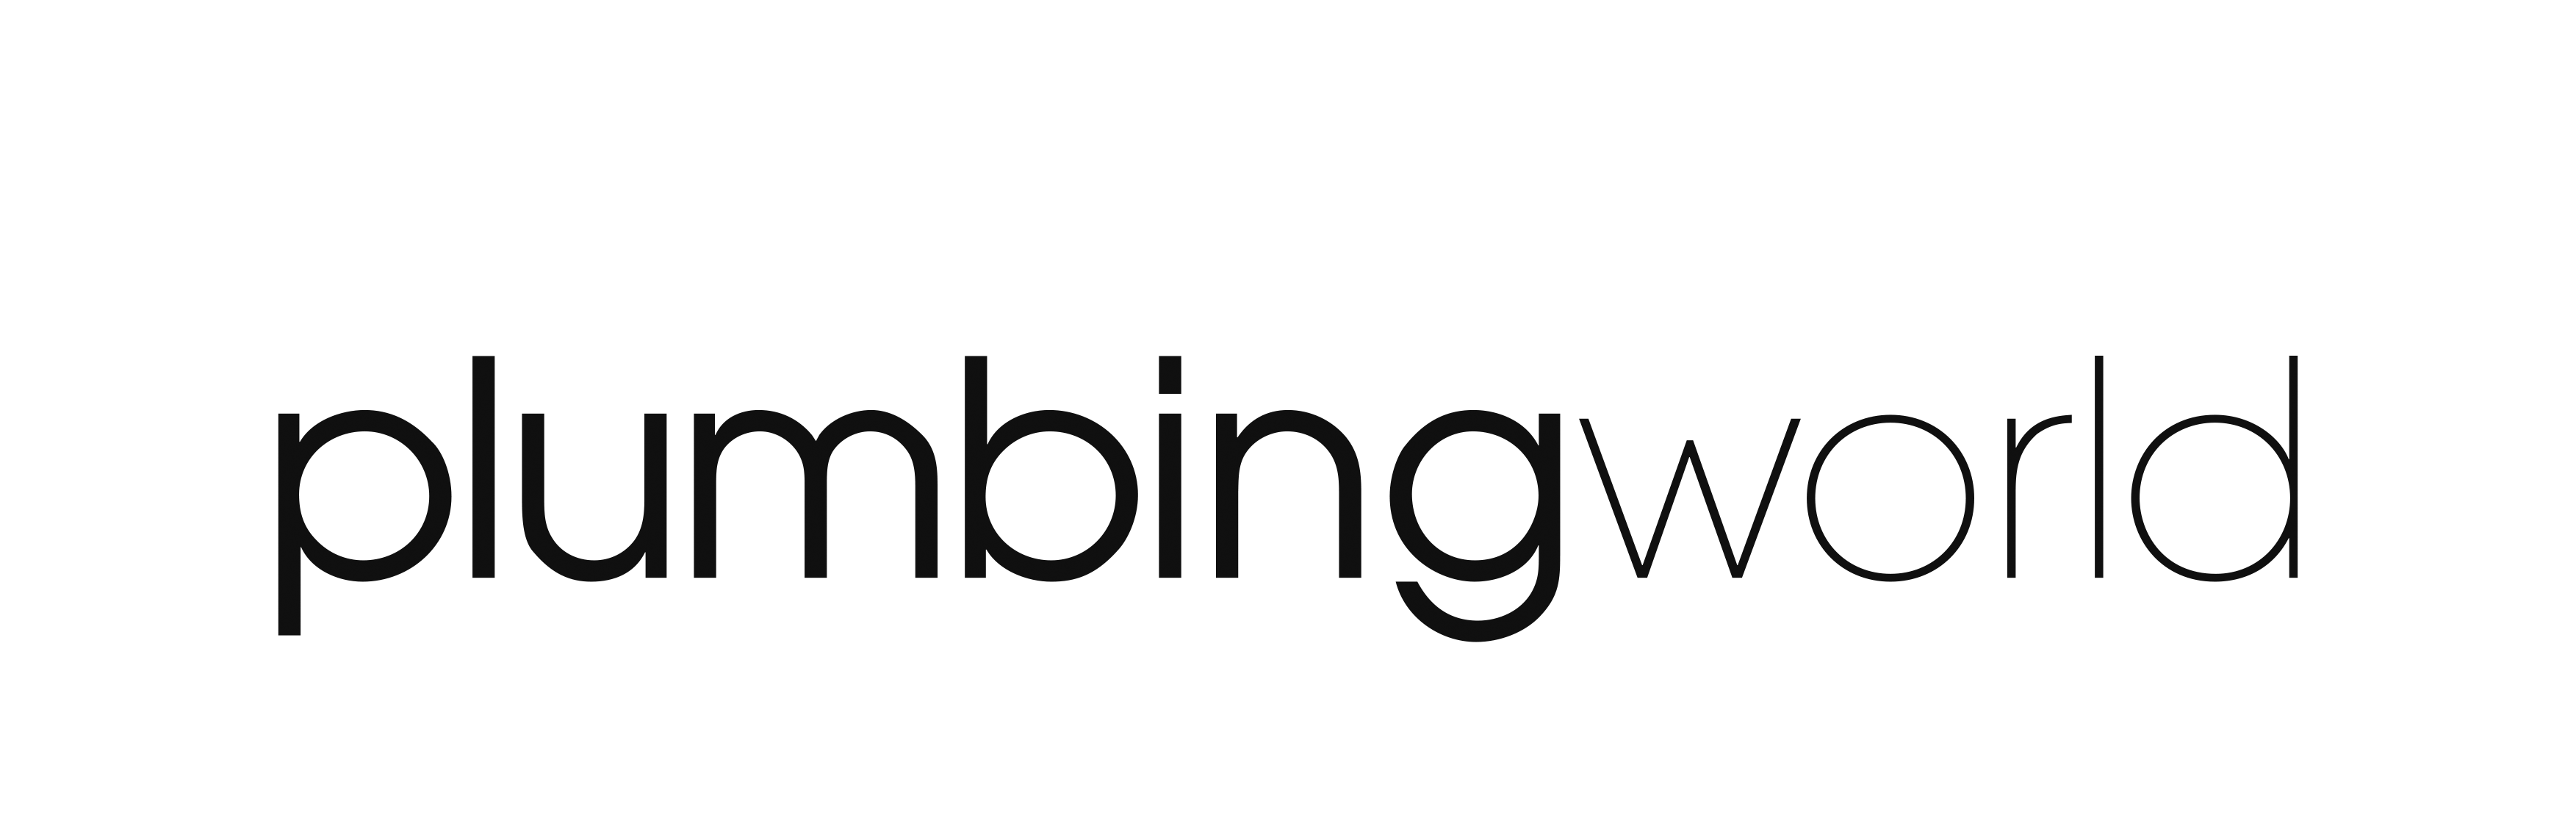 Plumbing World Logo